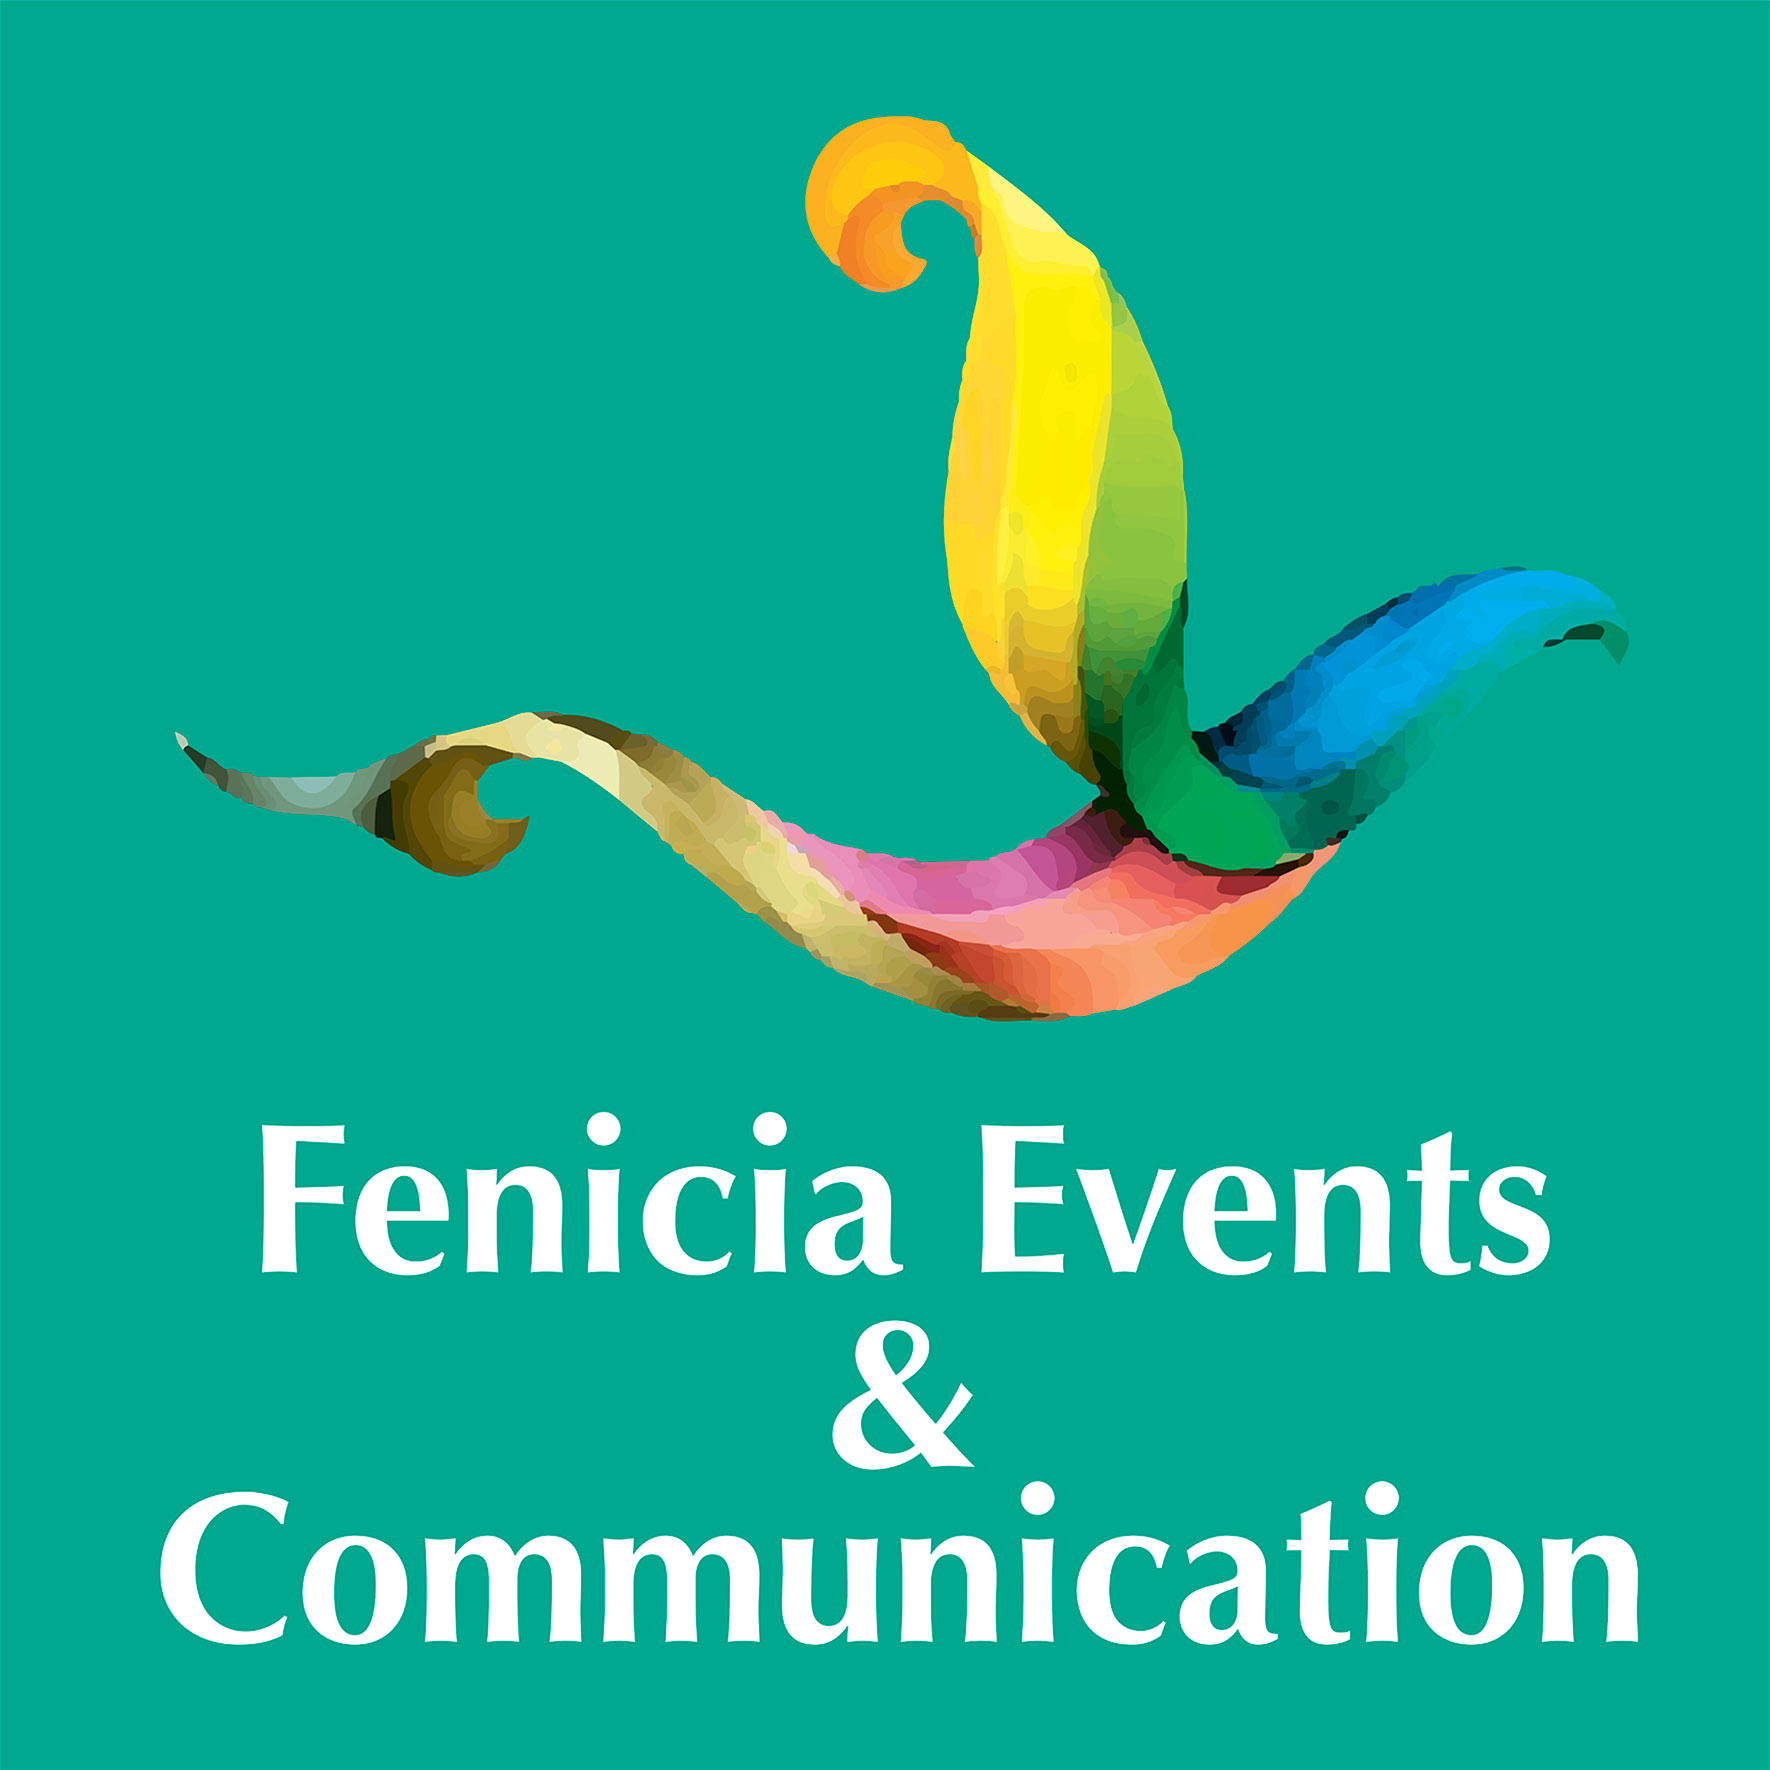 Fenicia Events & Communication